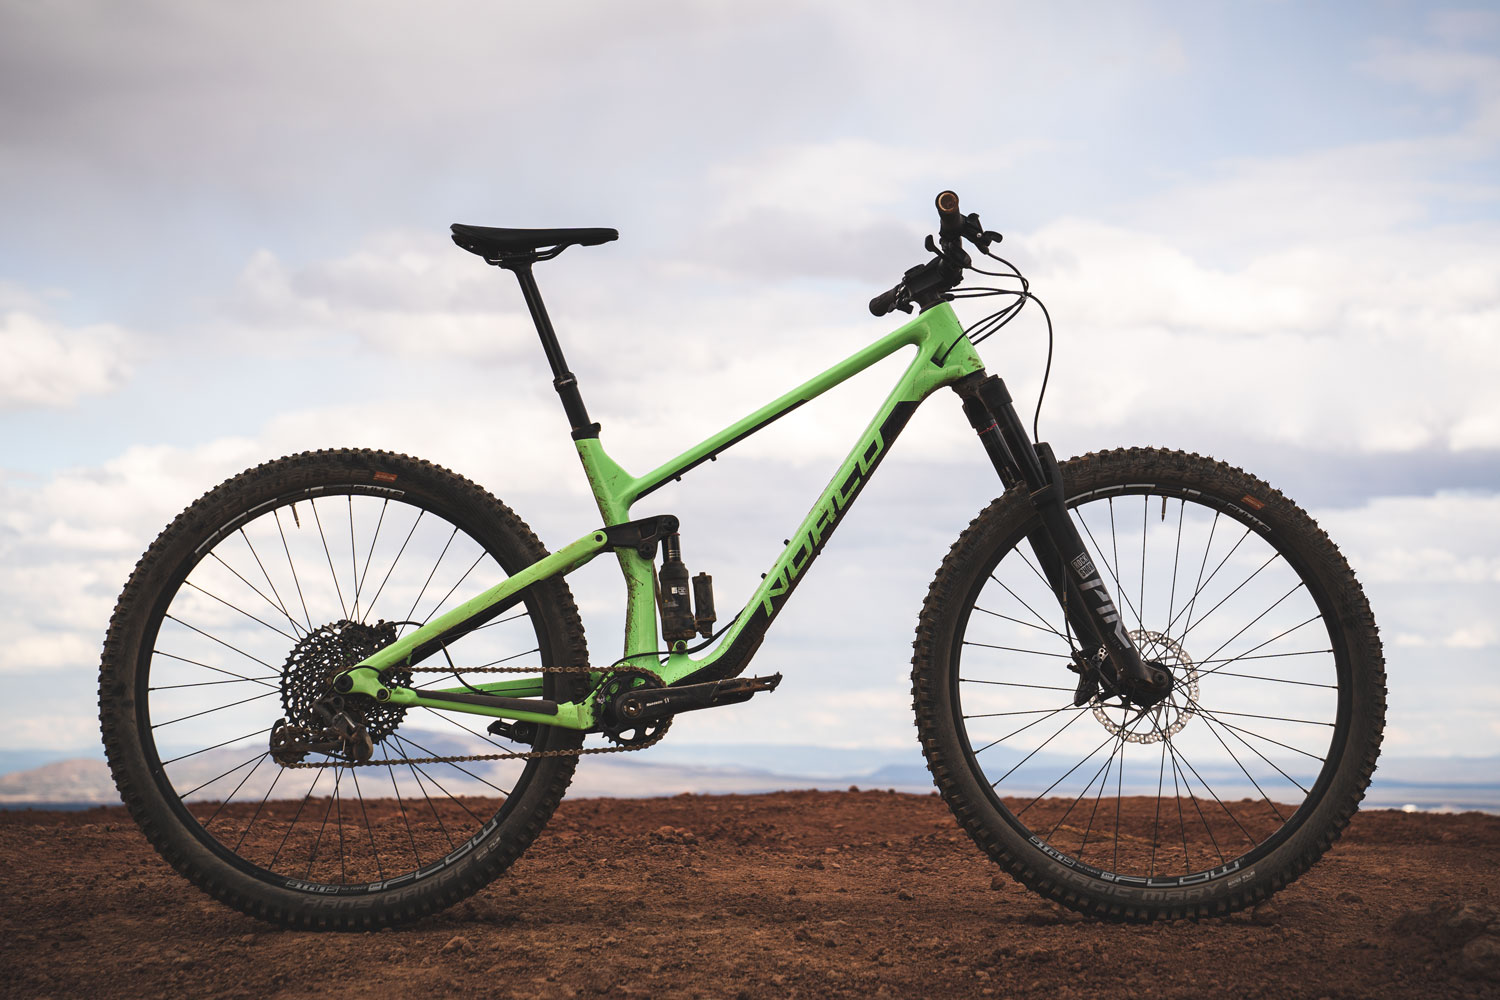 Review: Norco Optic C2 - The Best Trail Mountain Bike Yet